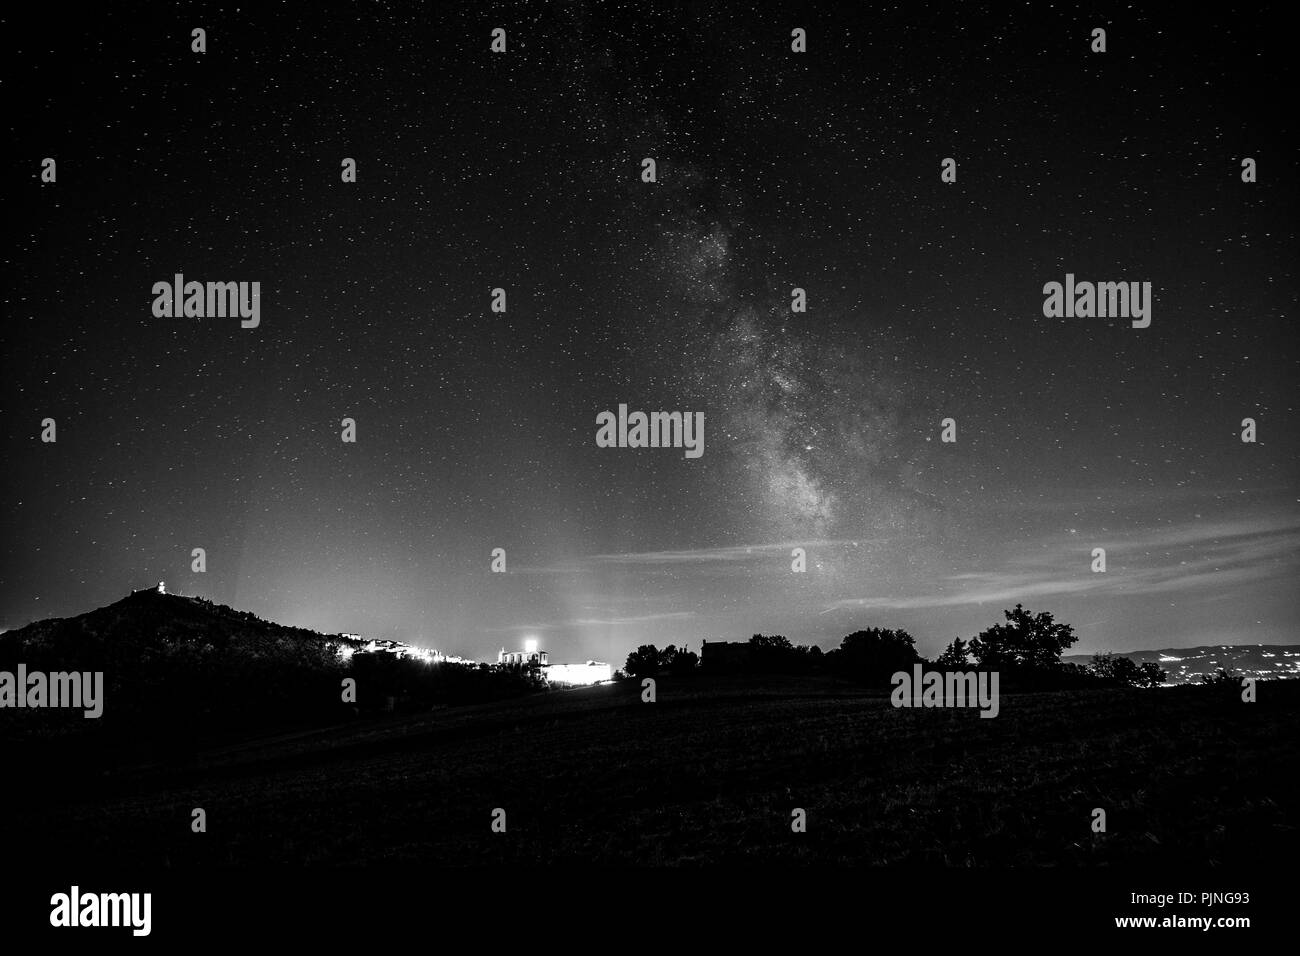 beautiful view of starred night sky with milky way over a cultivated field assisi town umbria italy in the background PJNG93